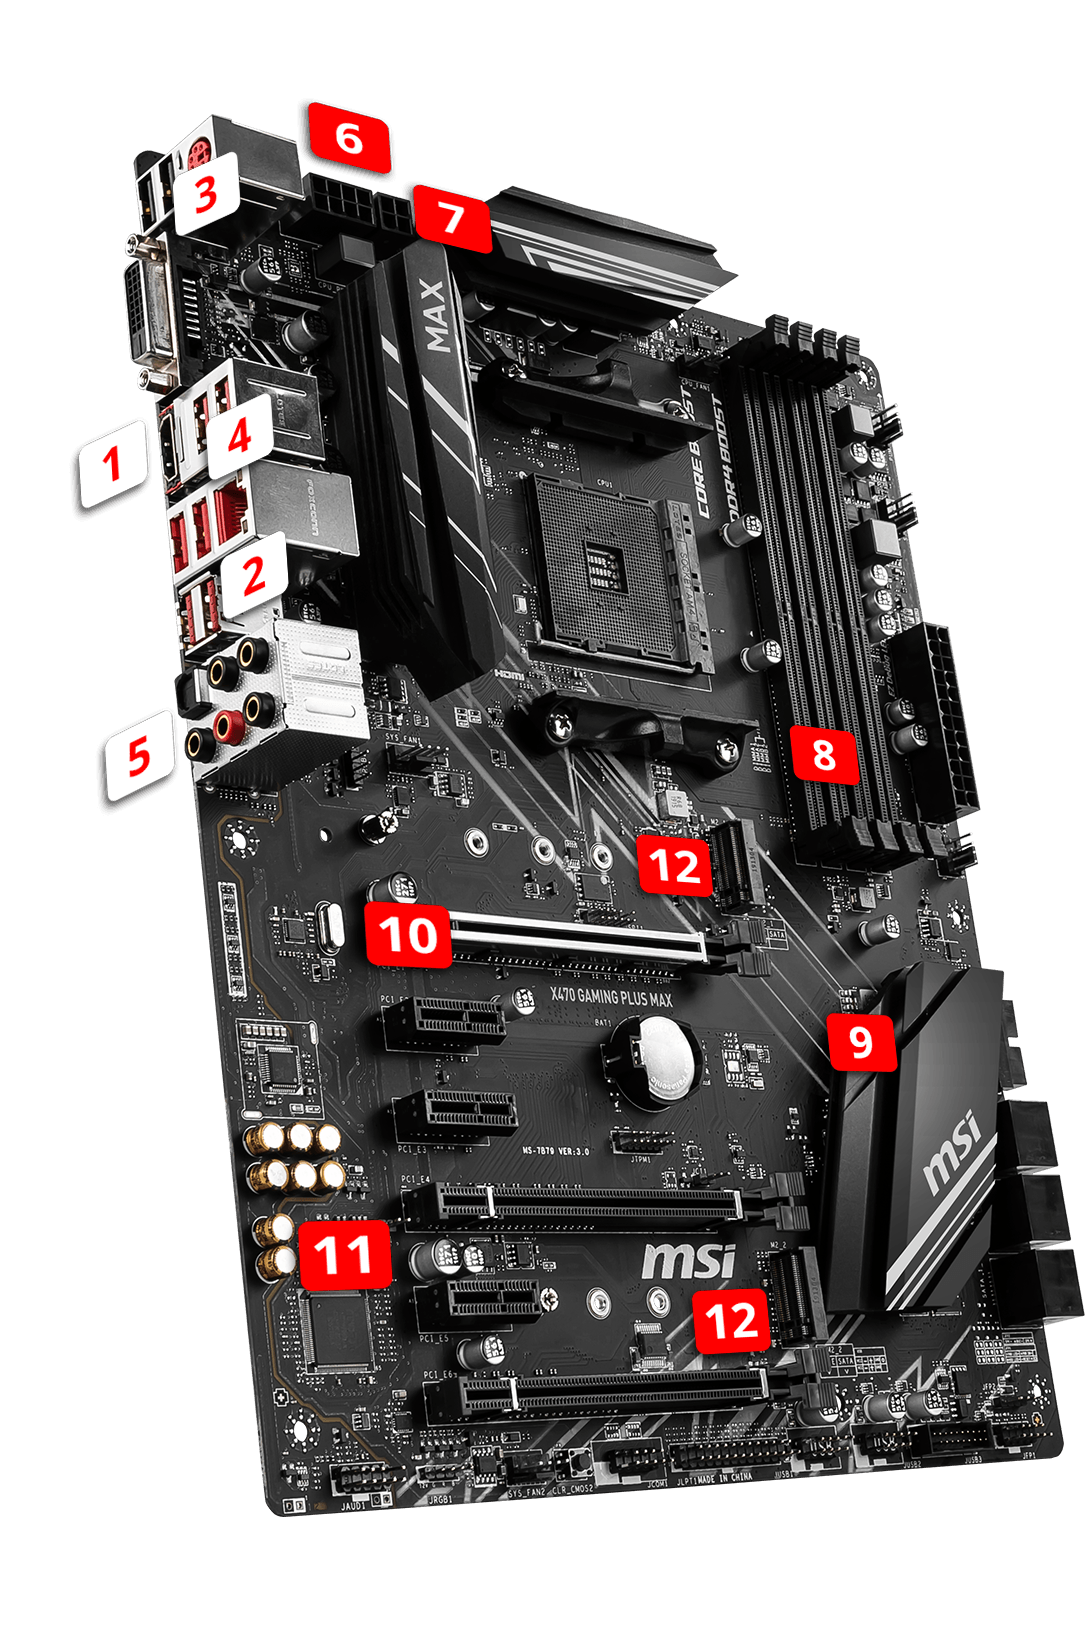 MSI X470 GAMING PLUS MAX overview